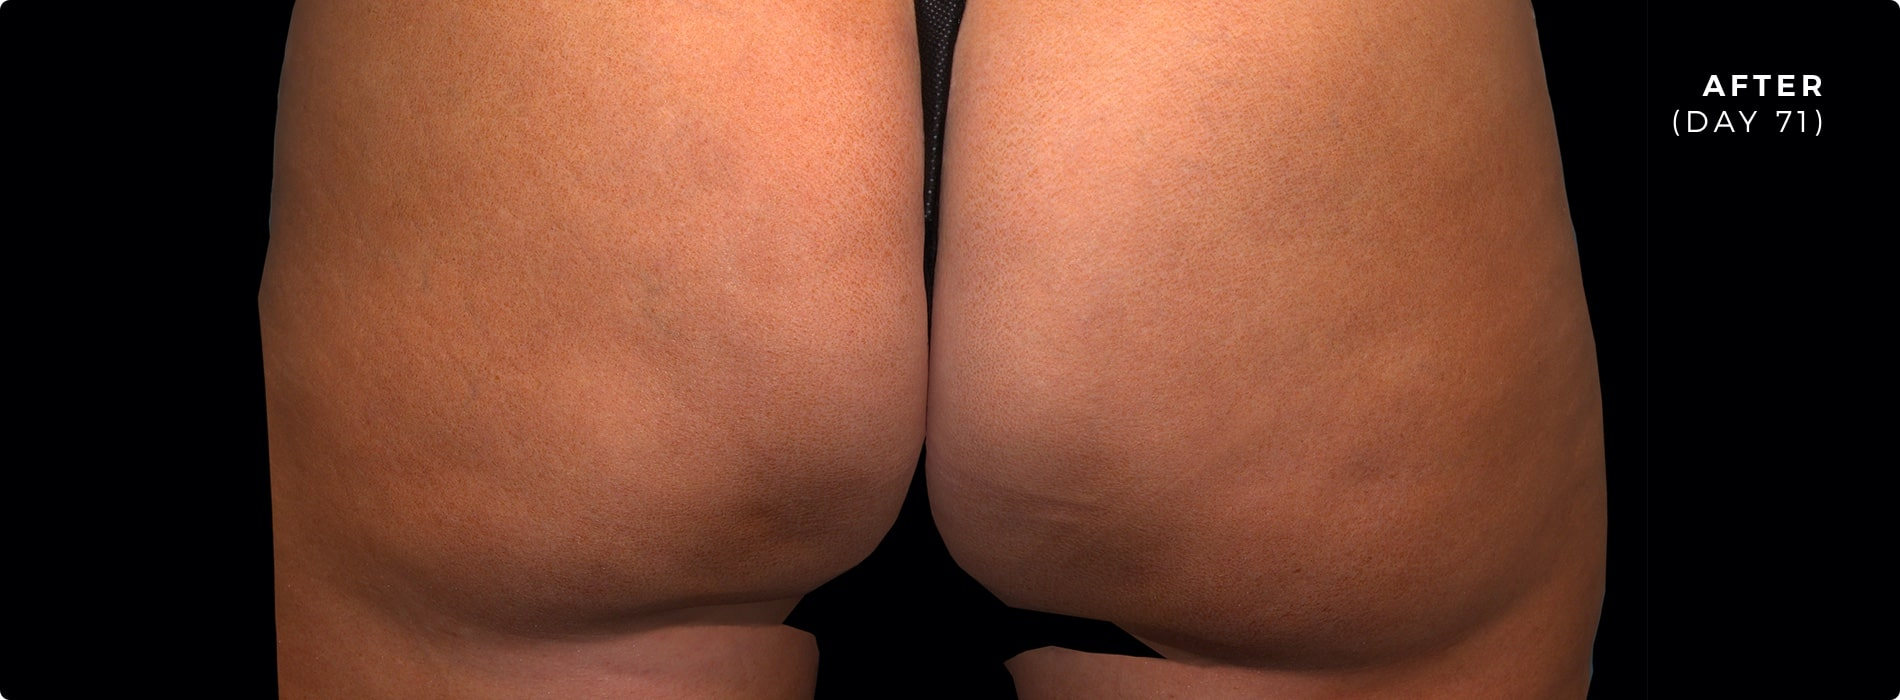 71 days after QWO for cellulite